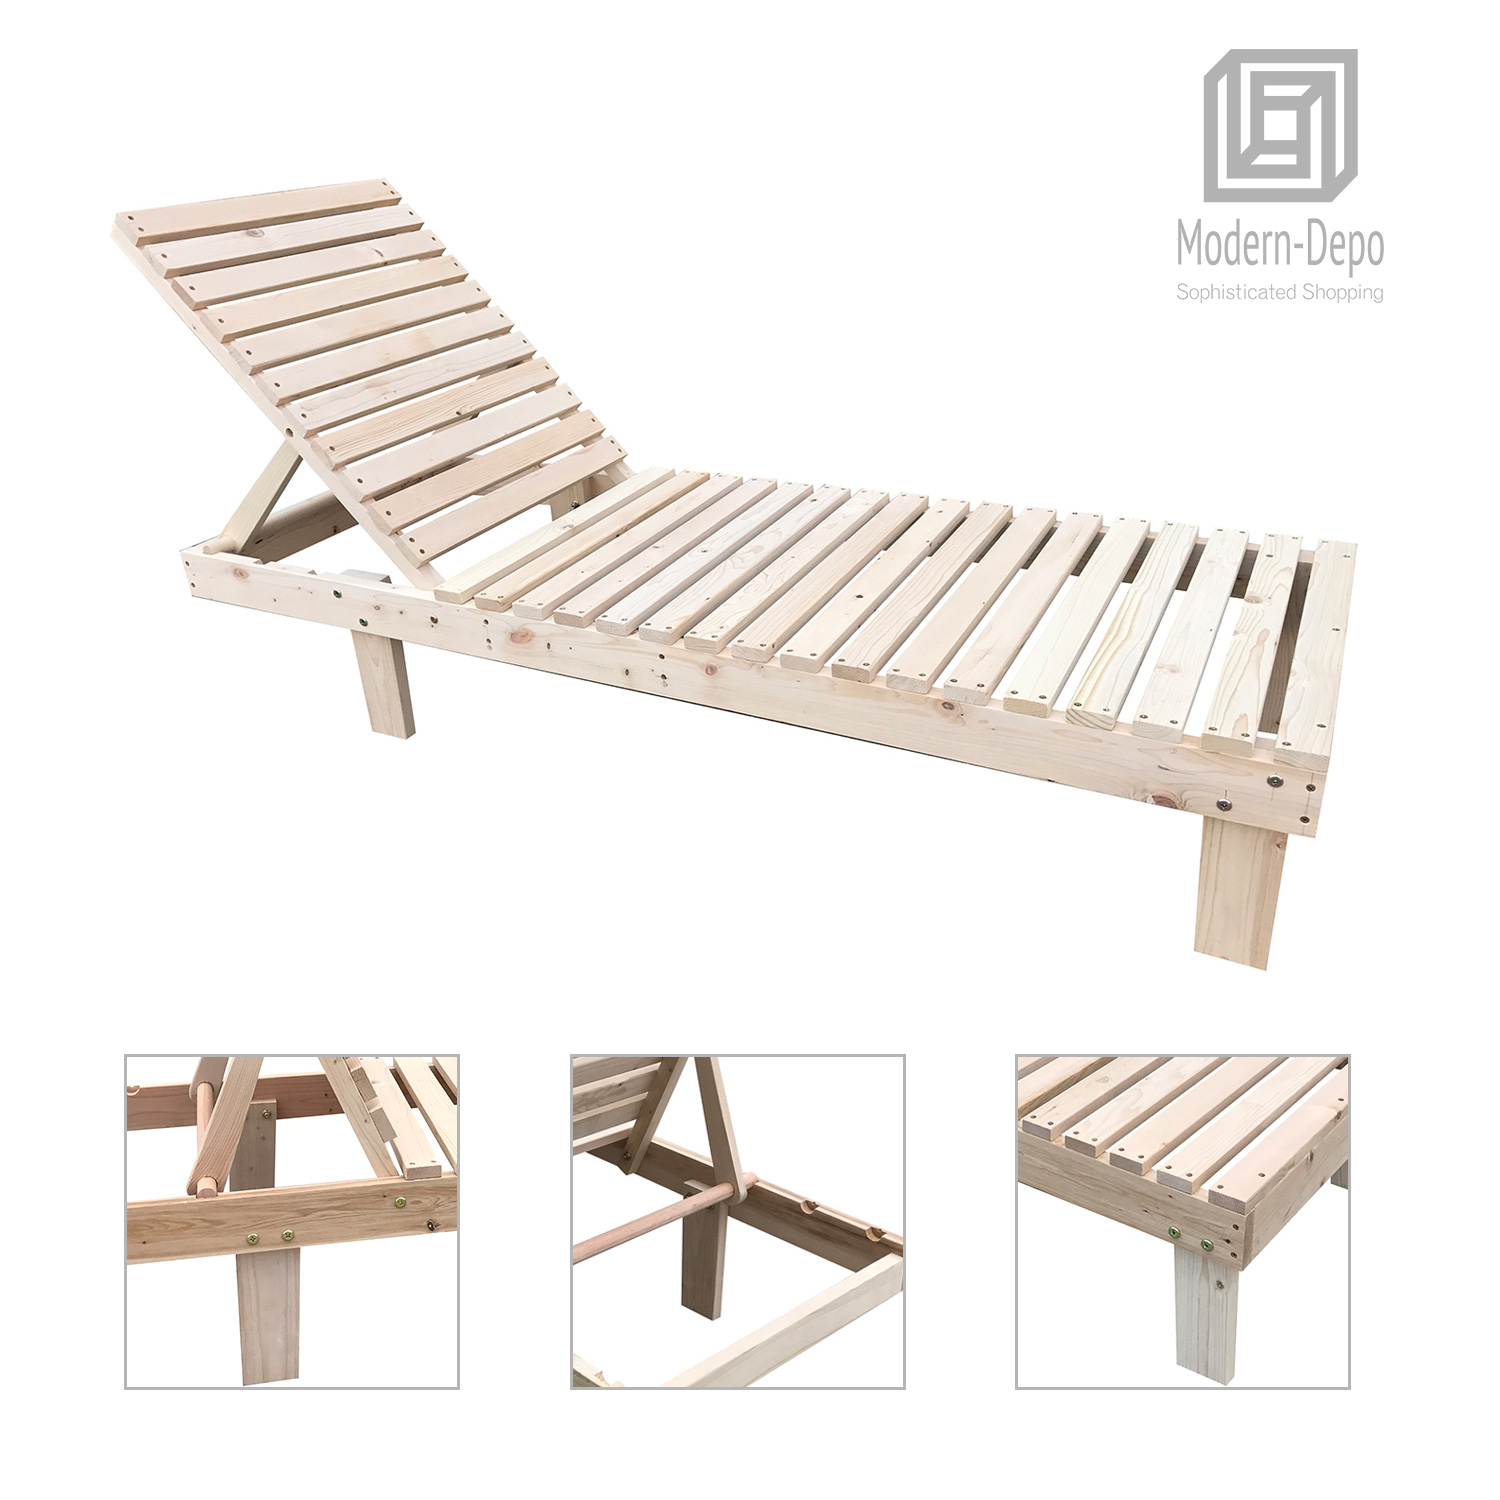 Marvelous Details About Patio Spa Pool Wooden Chaise Lounge Adjustable Chair Outdoor Garden Furniture Pabps2019 Chair Design Images Pabps2019Com